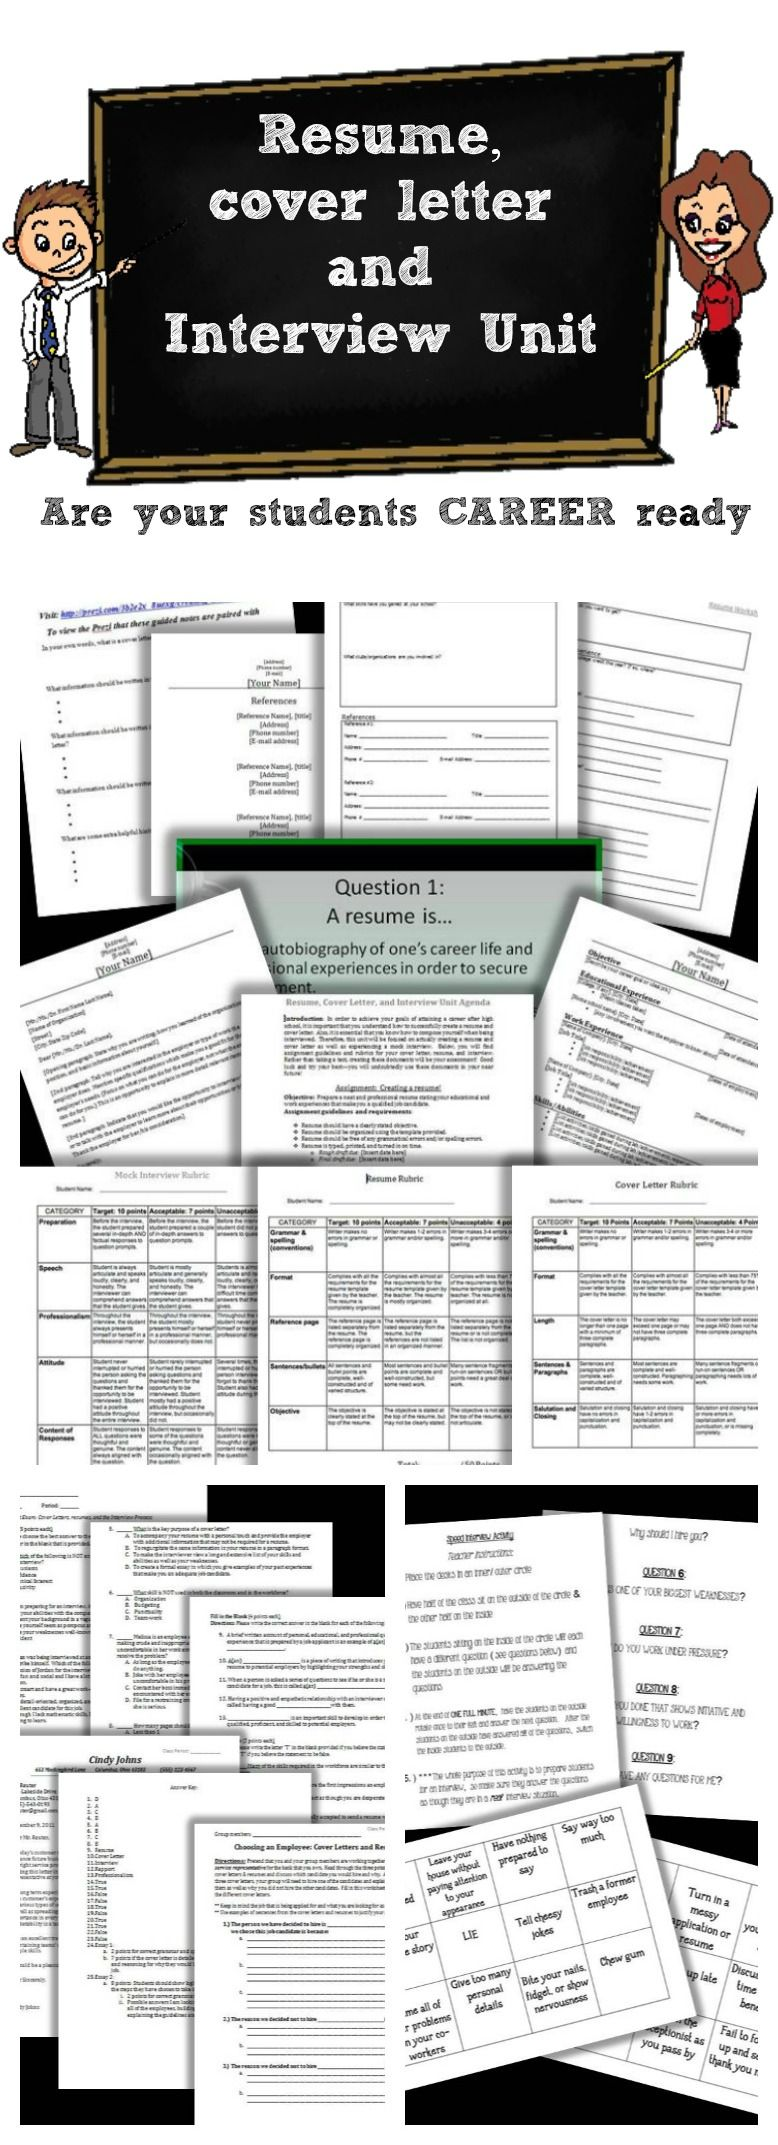 make sure your students are college and career ready with this resume cover letter